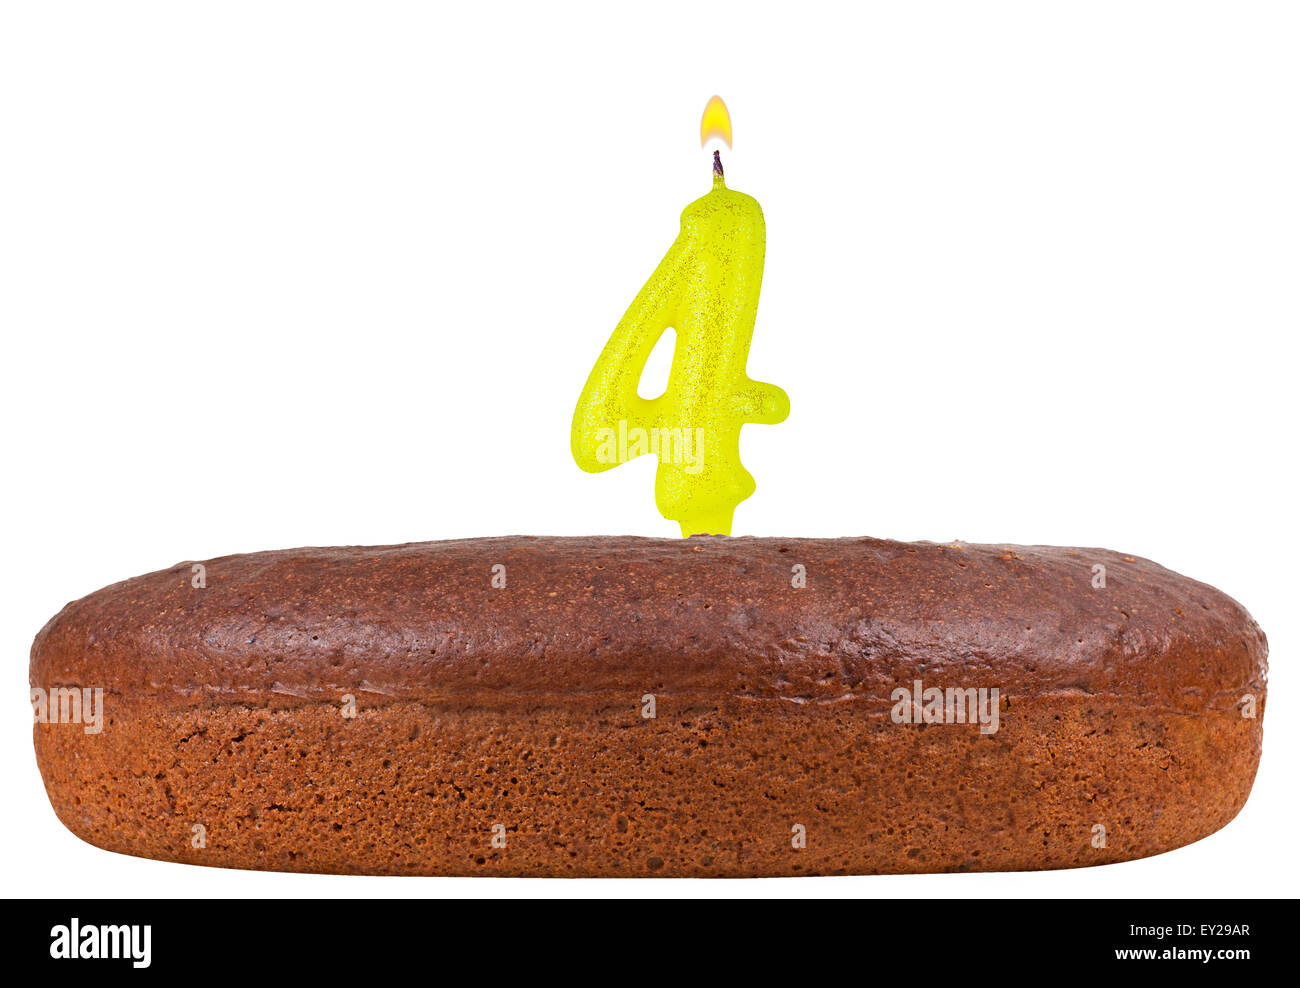 Birthday Cake With Candles Number 4 Isolated